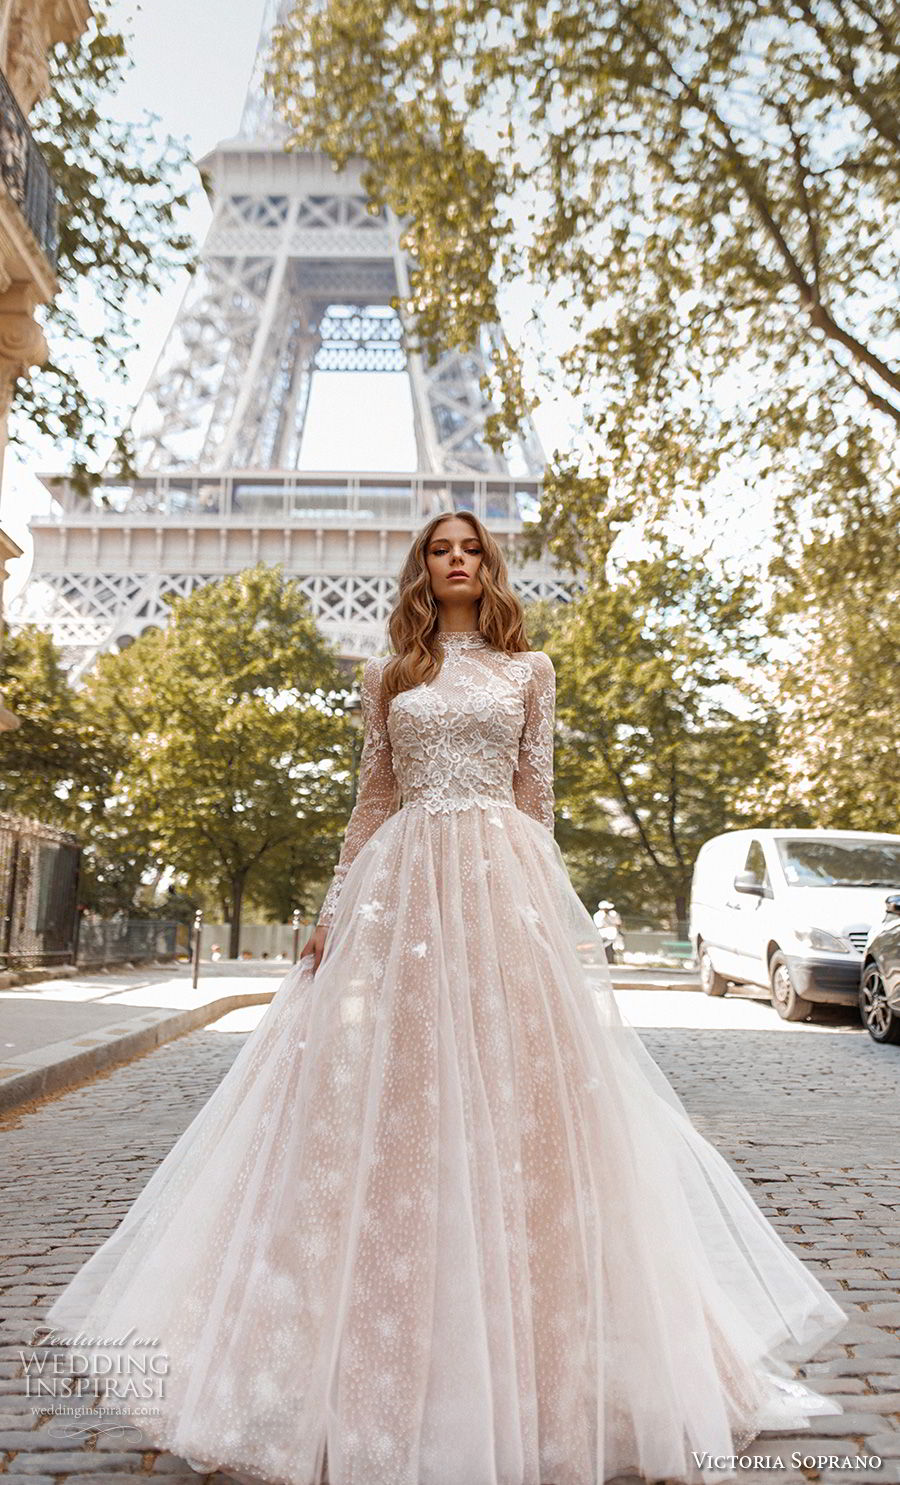 victoria soprano 2019 bridal long sleeves high neck heavily embellished bodice elegant princess a  line wedding dress open low back chapel train (12) mv